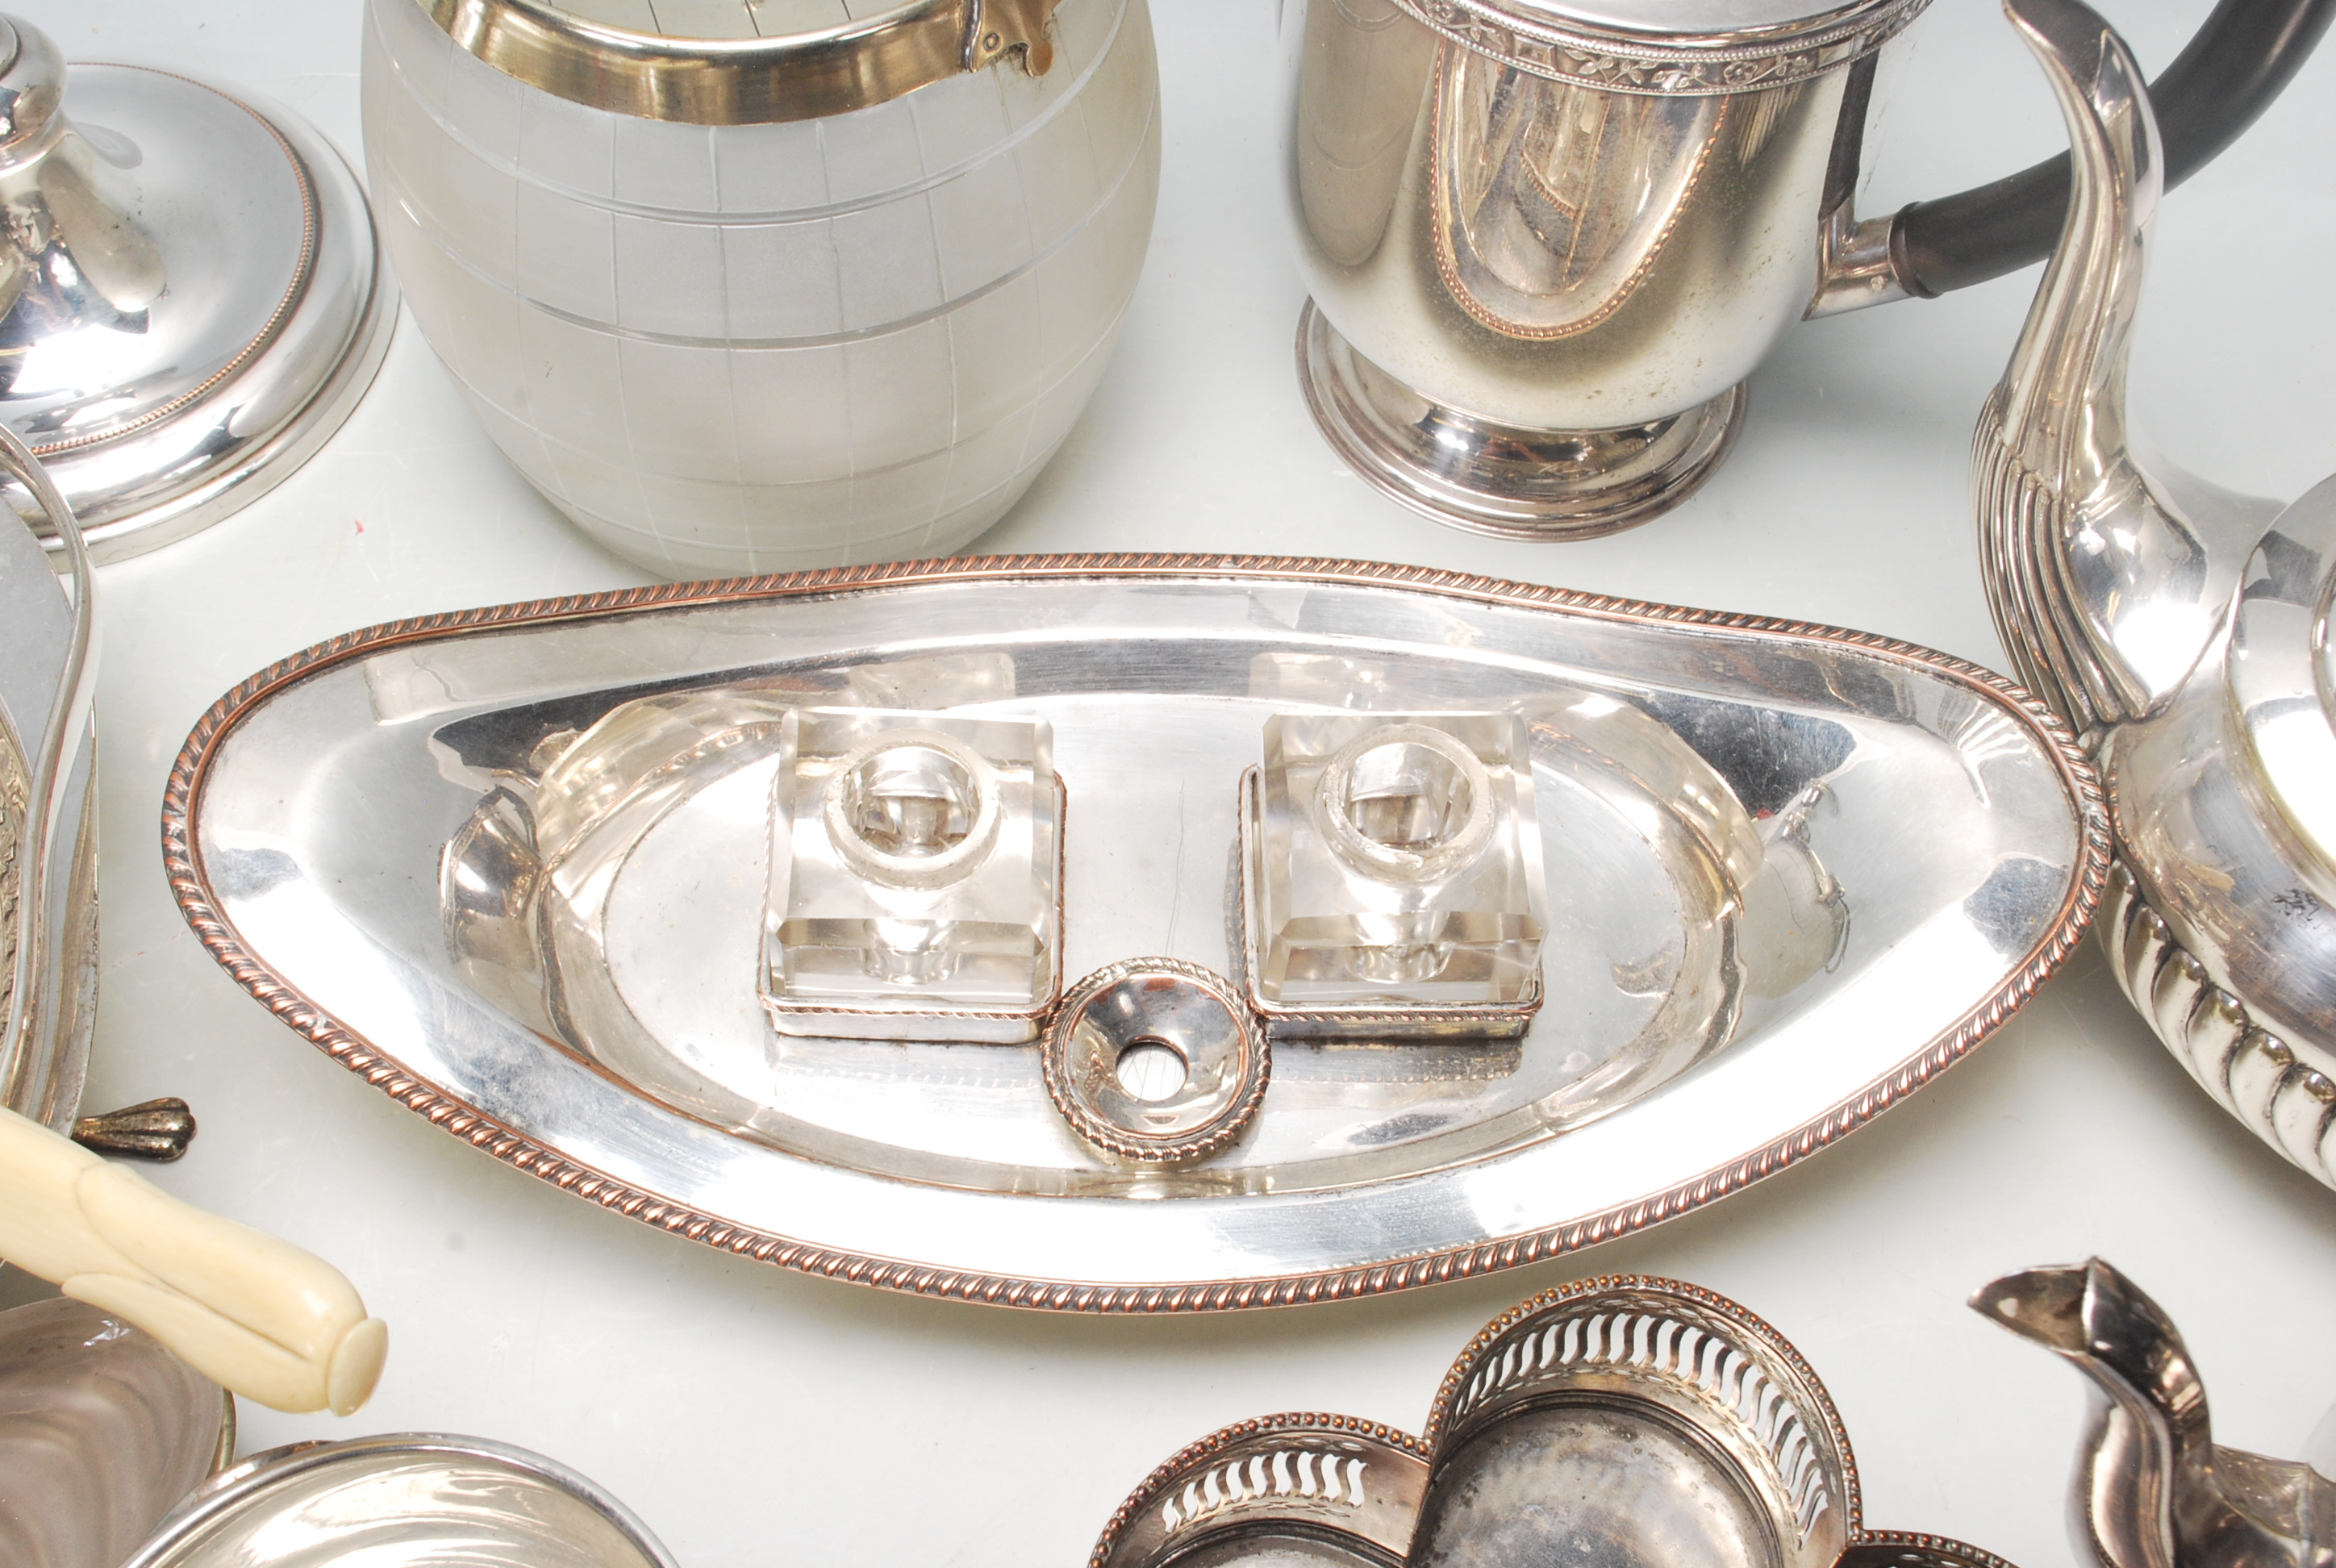 Lot 690 - A good collection of 20th century antique silver plated items to include Sheffield plated inkstand